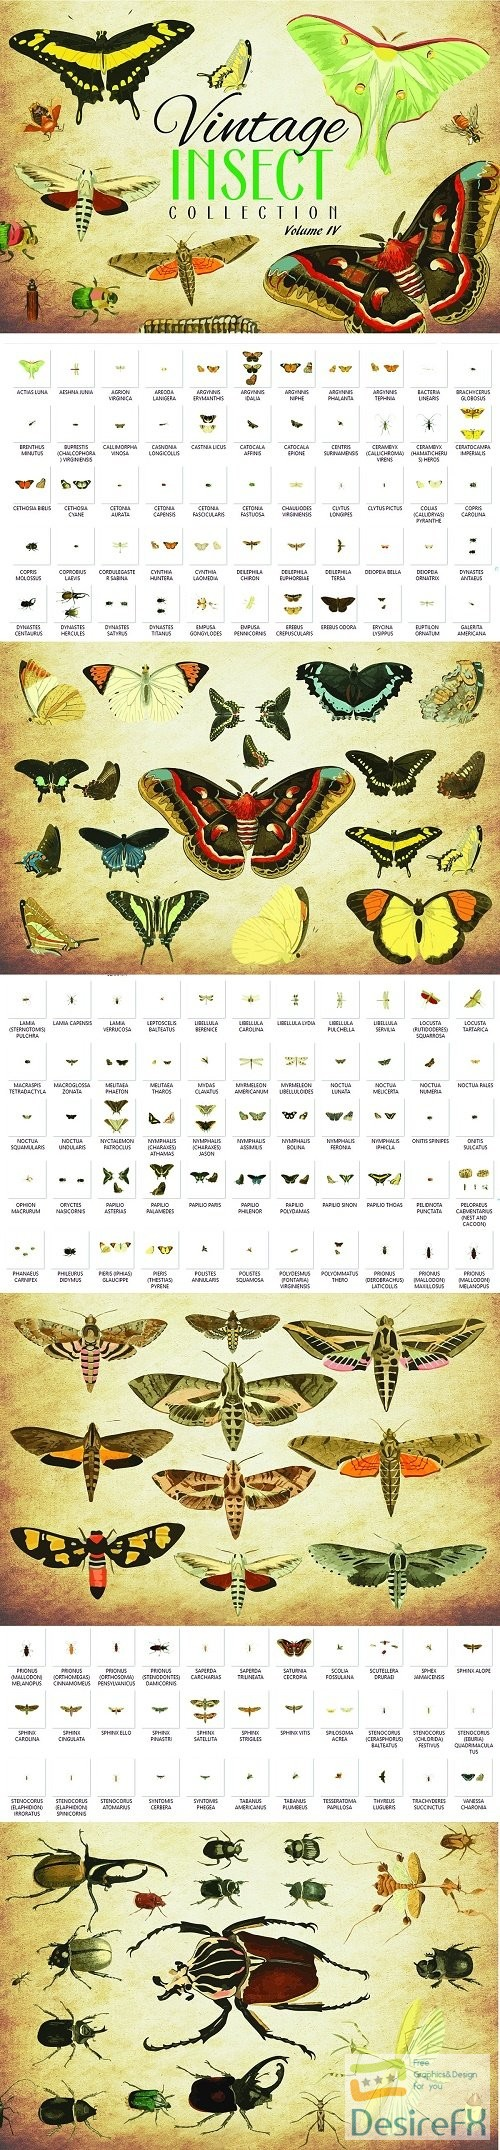 stock-vectors - 154 Vintage Insect Vector Graphics 4 - 3502662